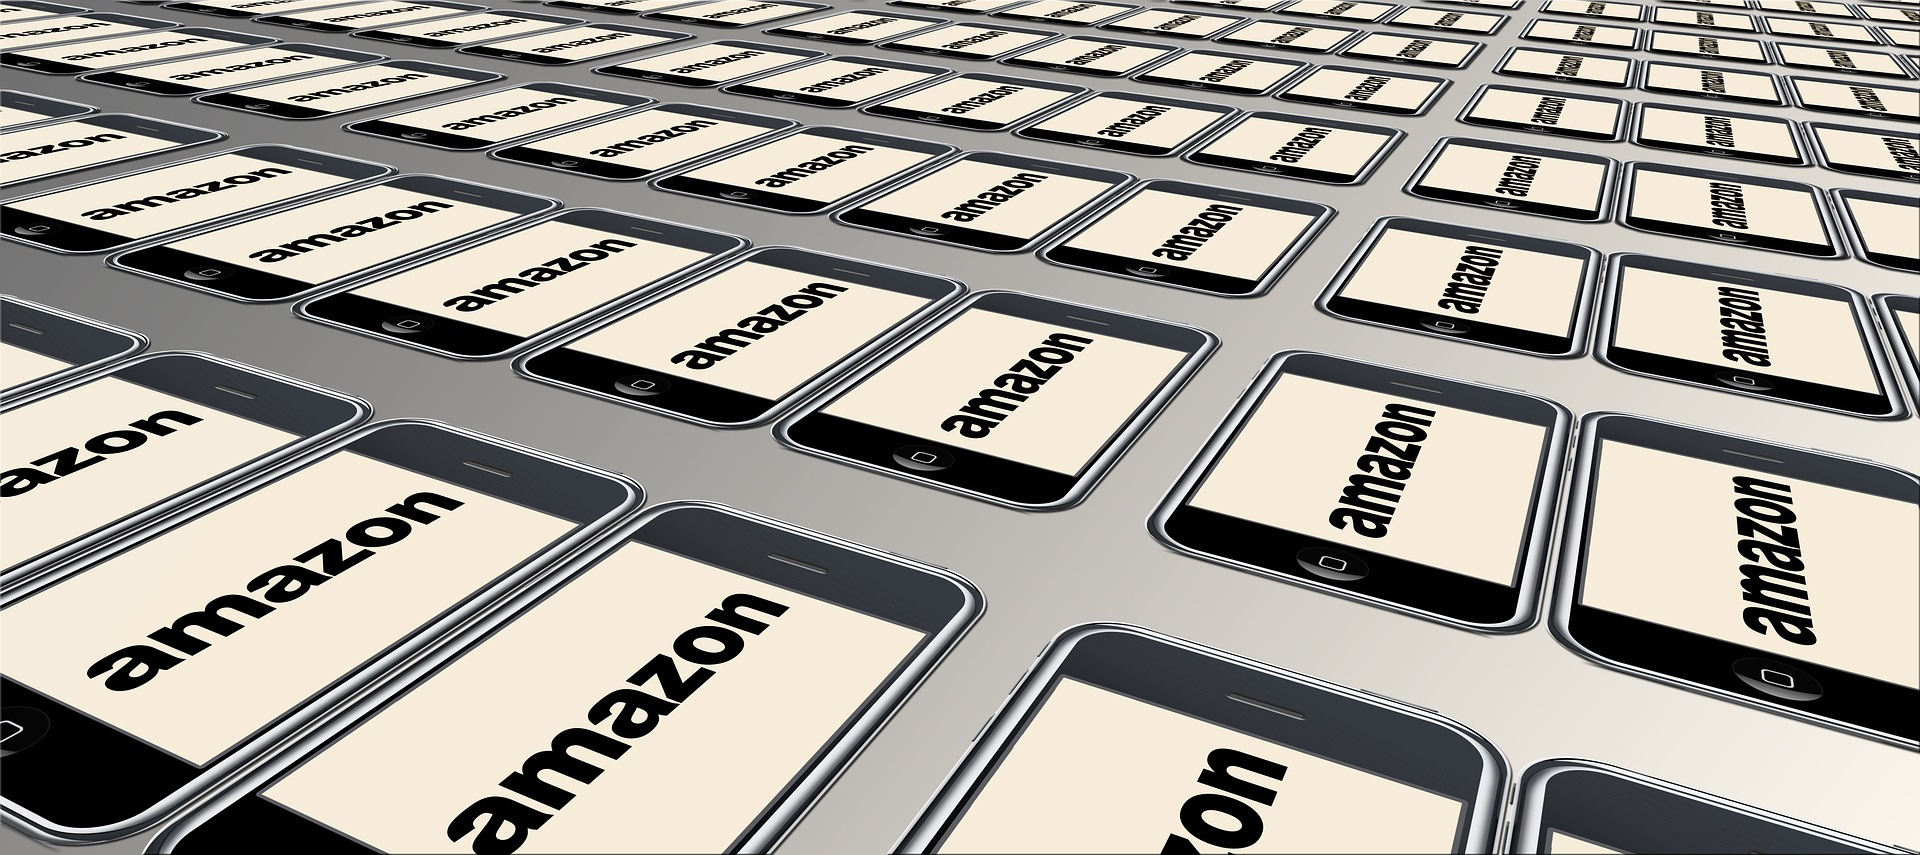 Lessons from Amazon